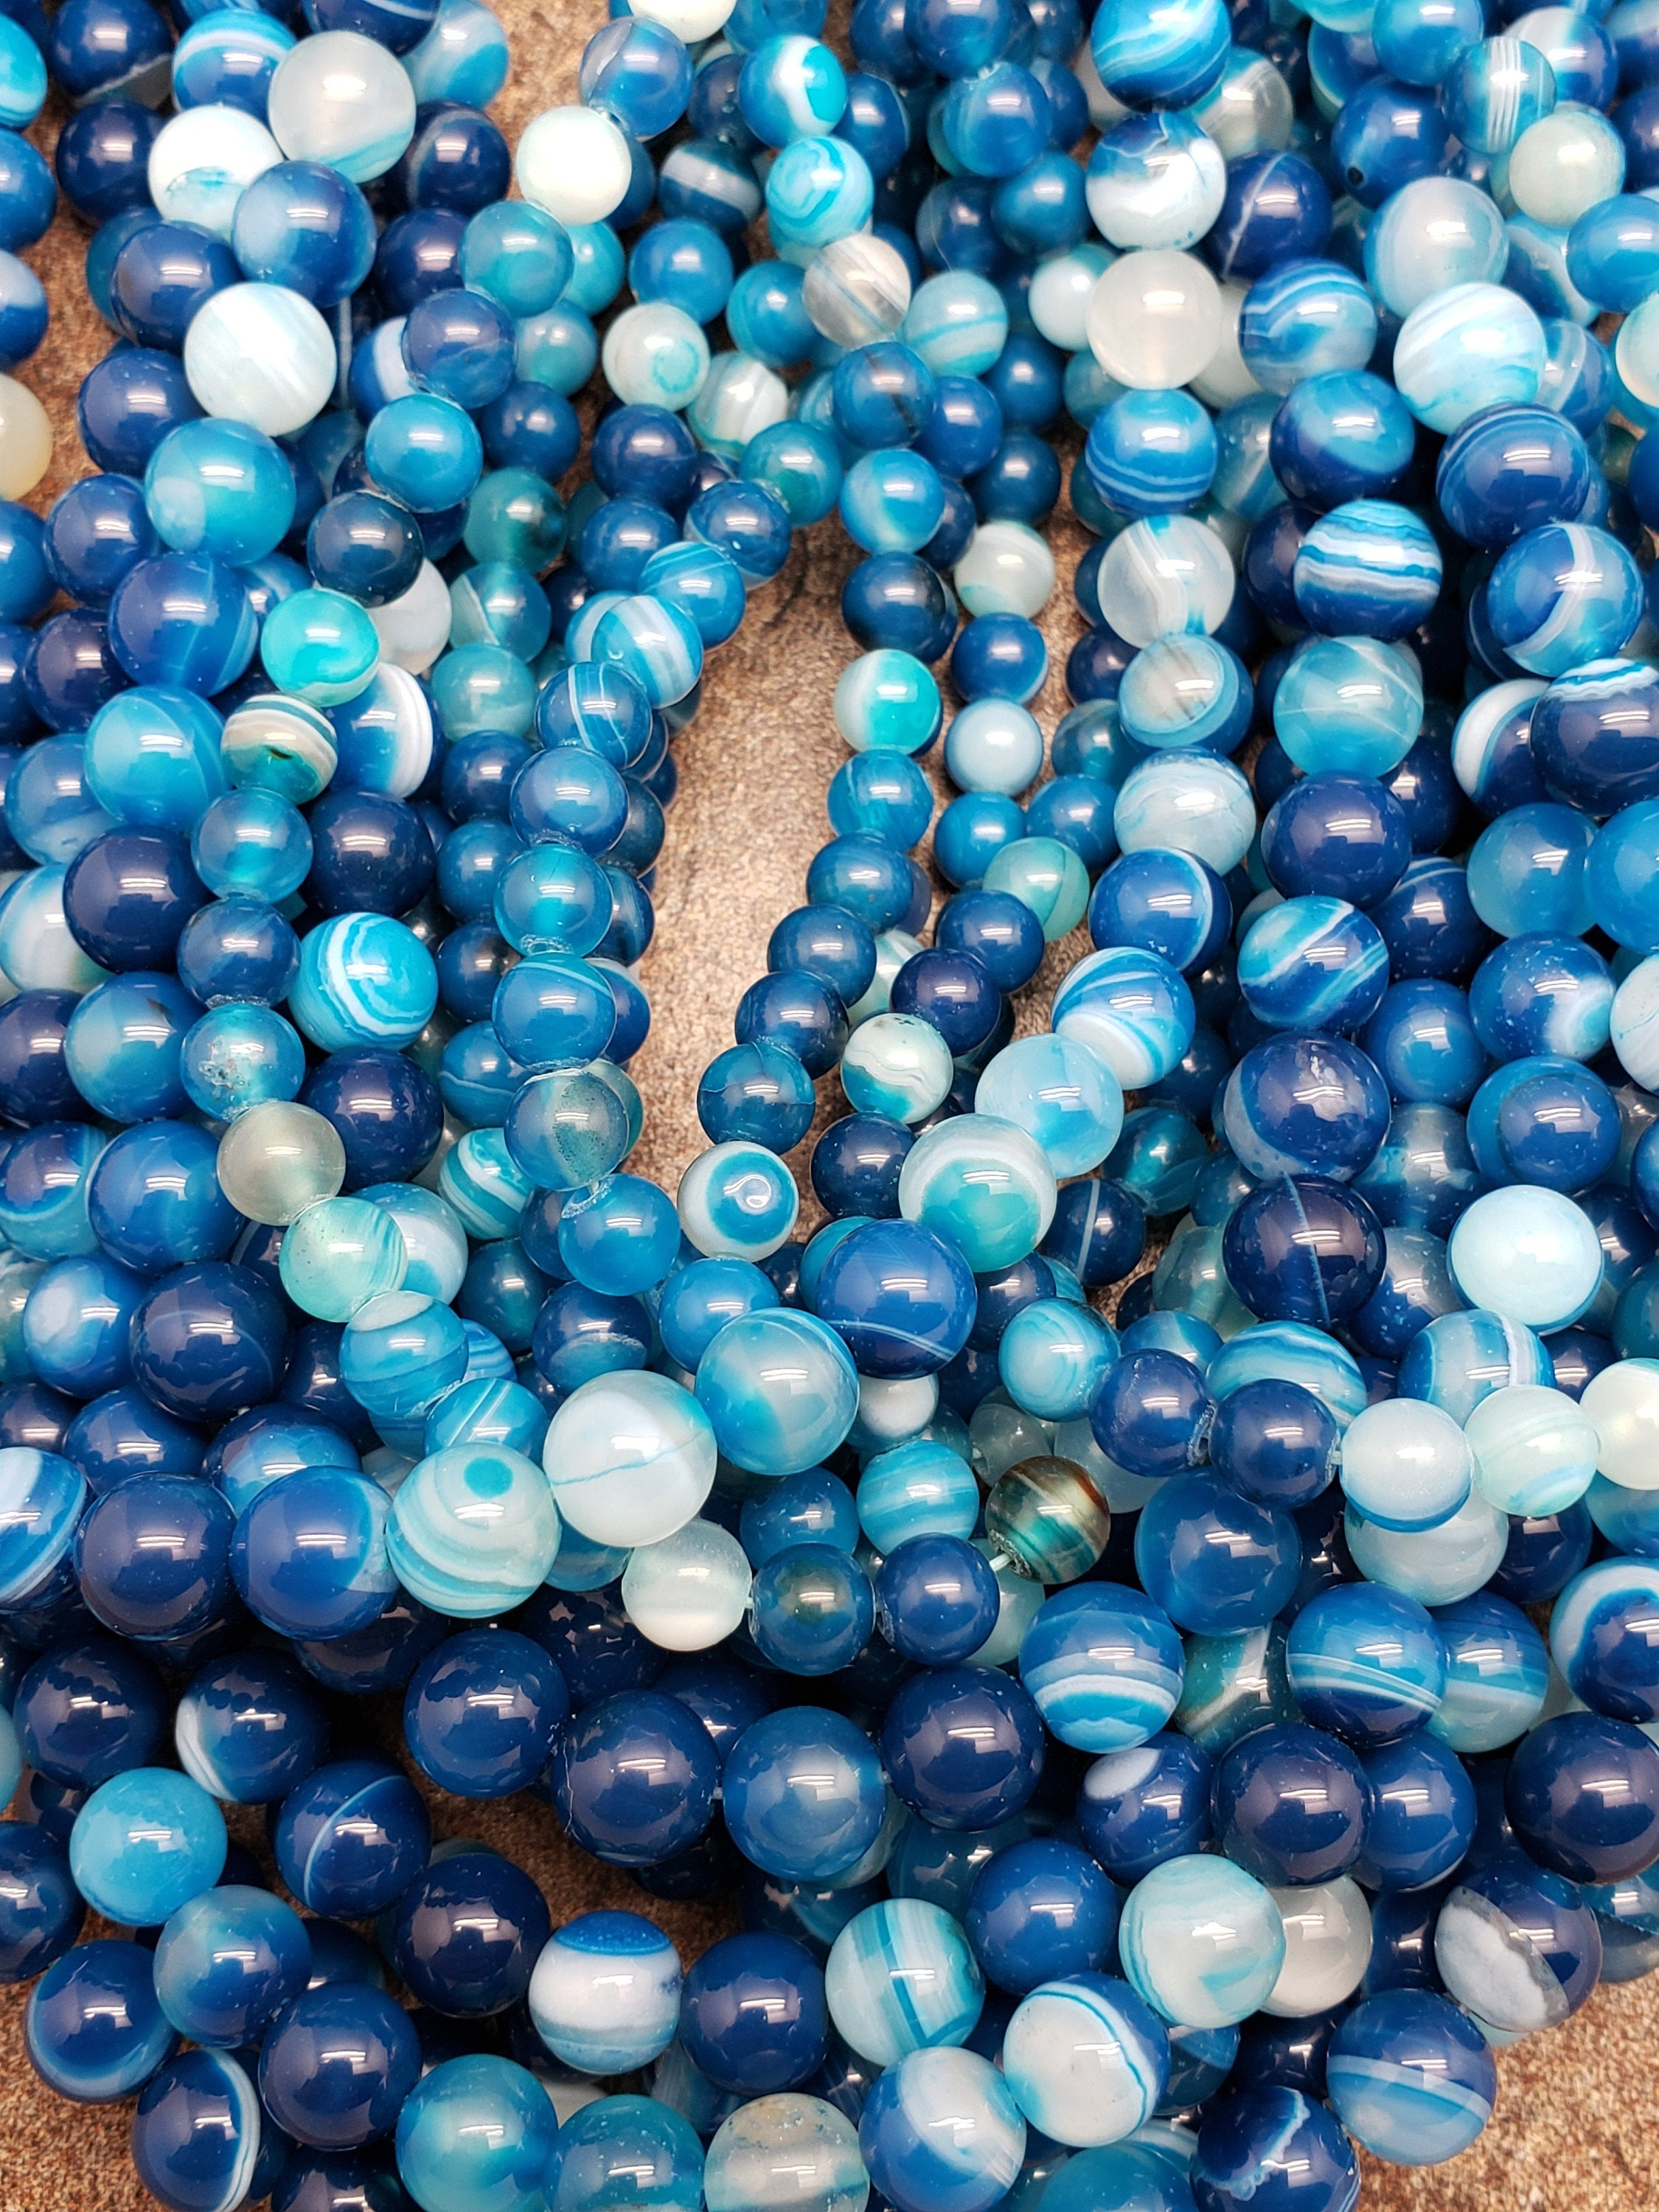 6mm or 8mm Blue Striped / Banded Agate Glossy Polished Round Beads, 15 inch